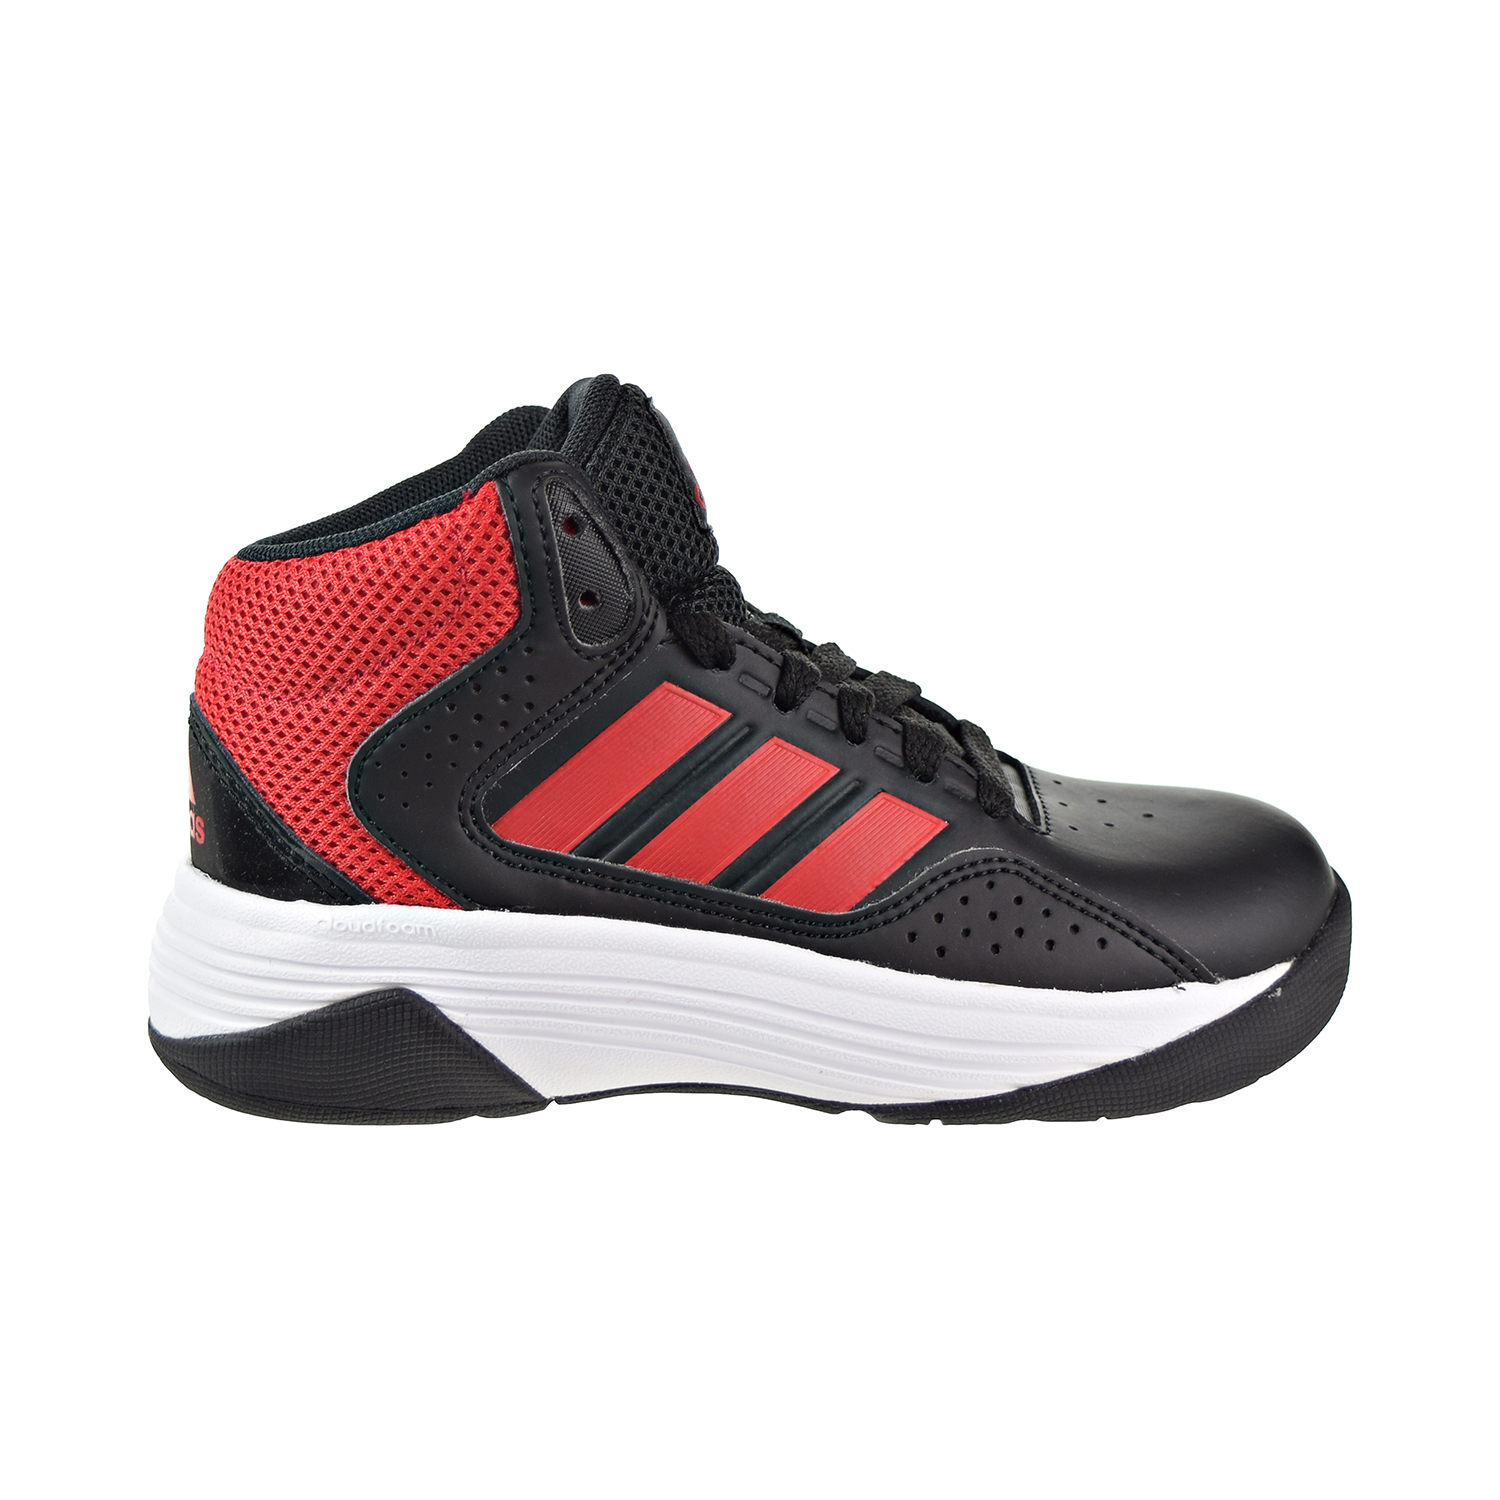 Details about Adidas Cloudfoam Ilation Mid K Big Kids Little Kids Shoes  Black Red White bb9964 229056ed7